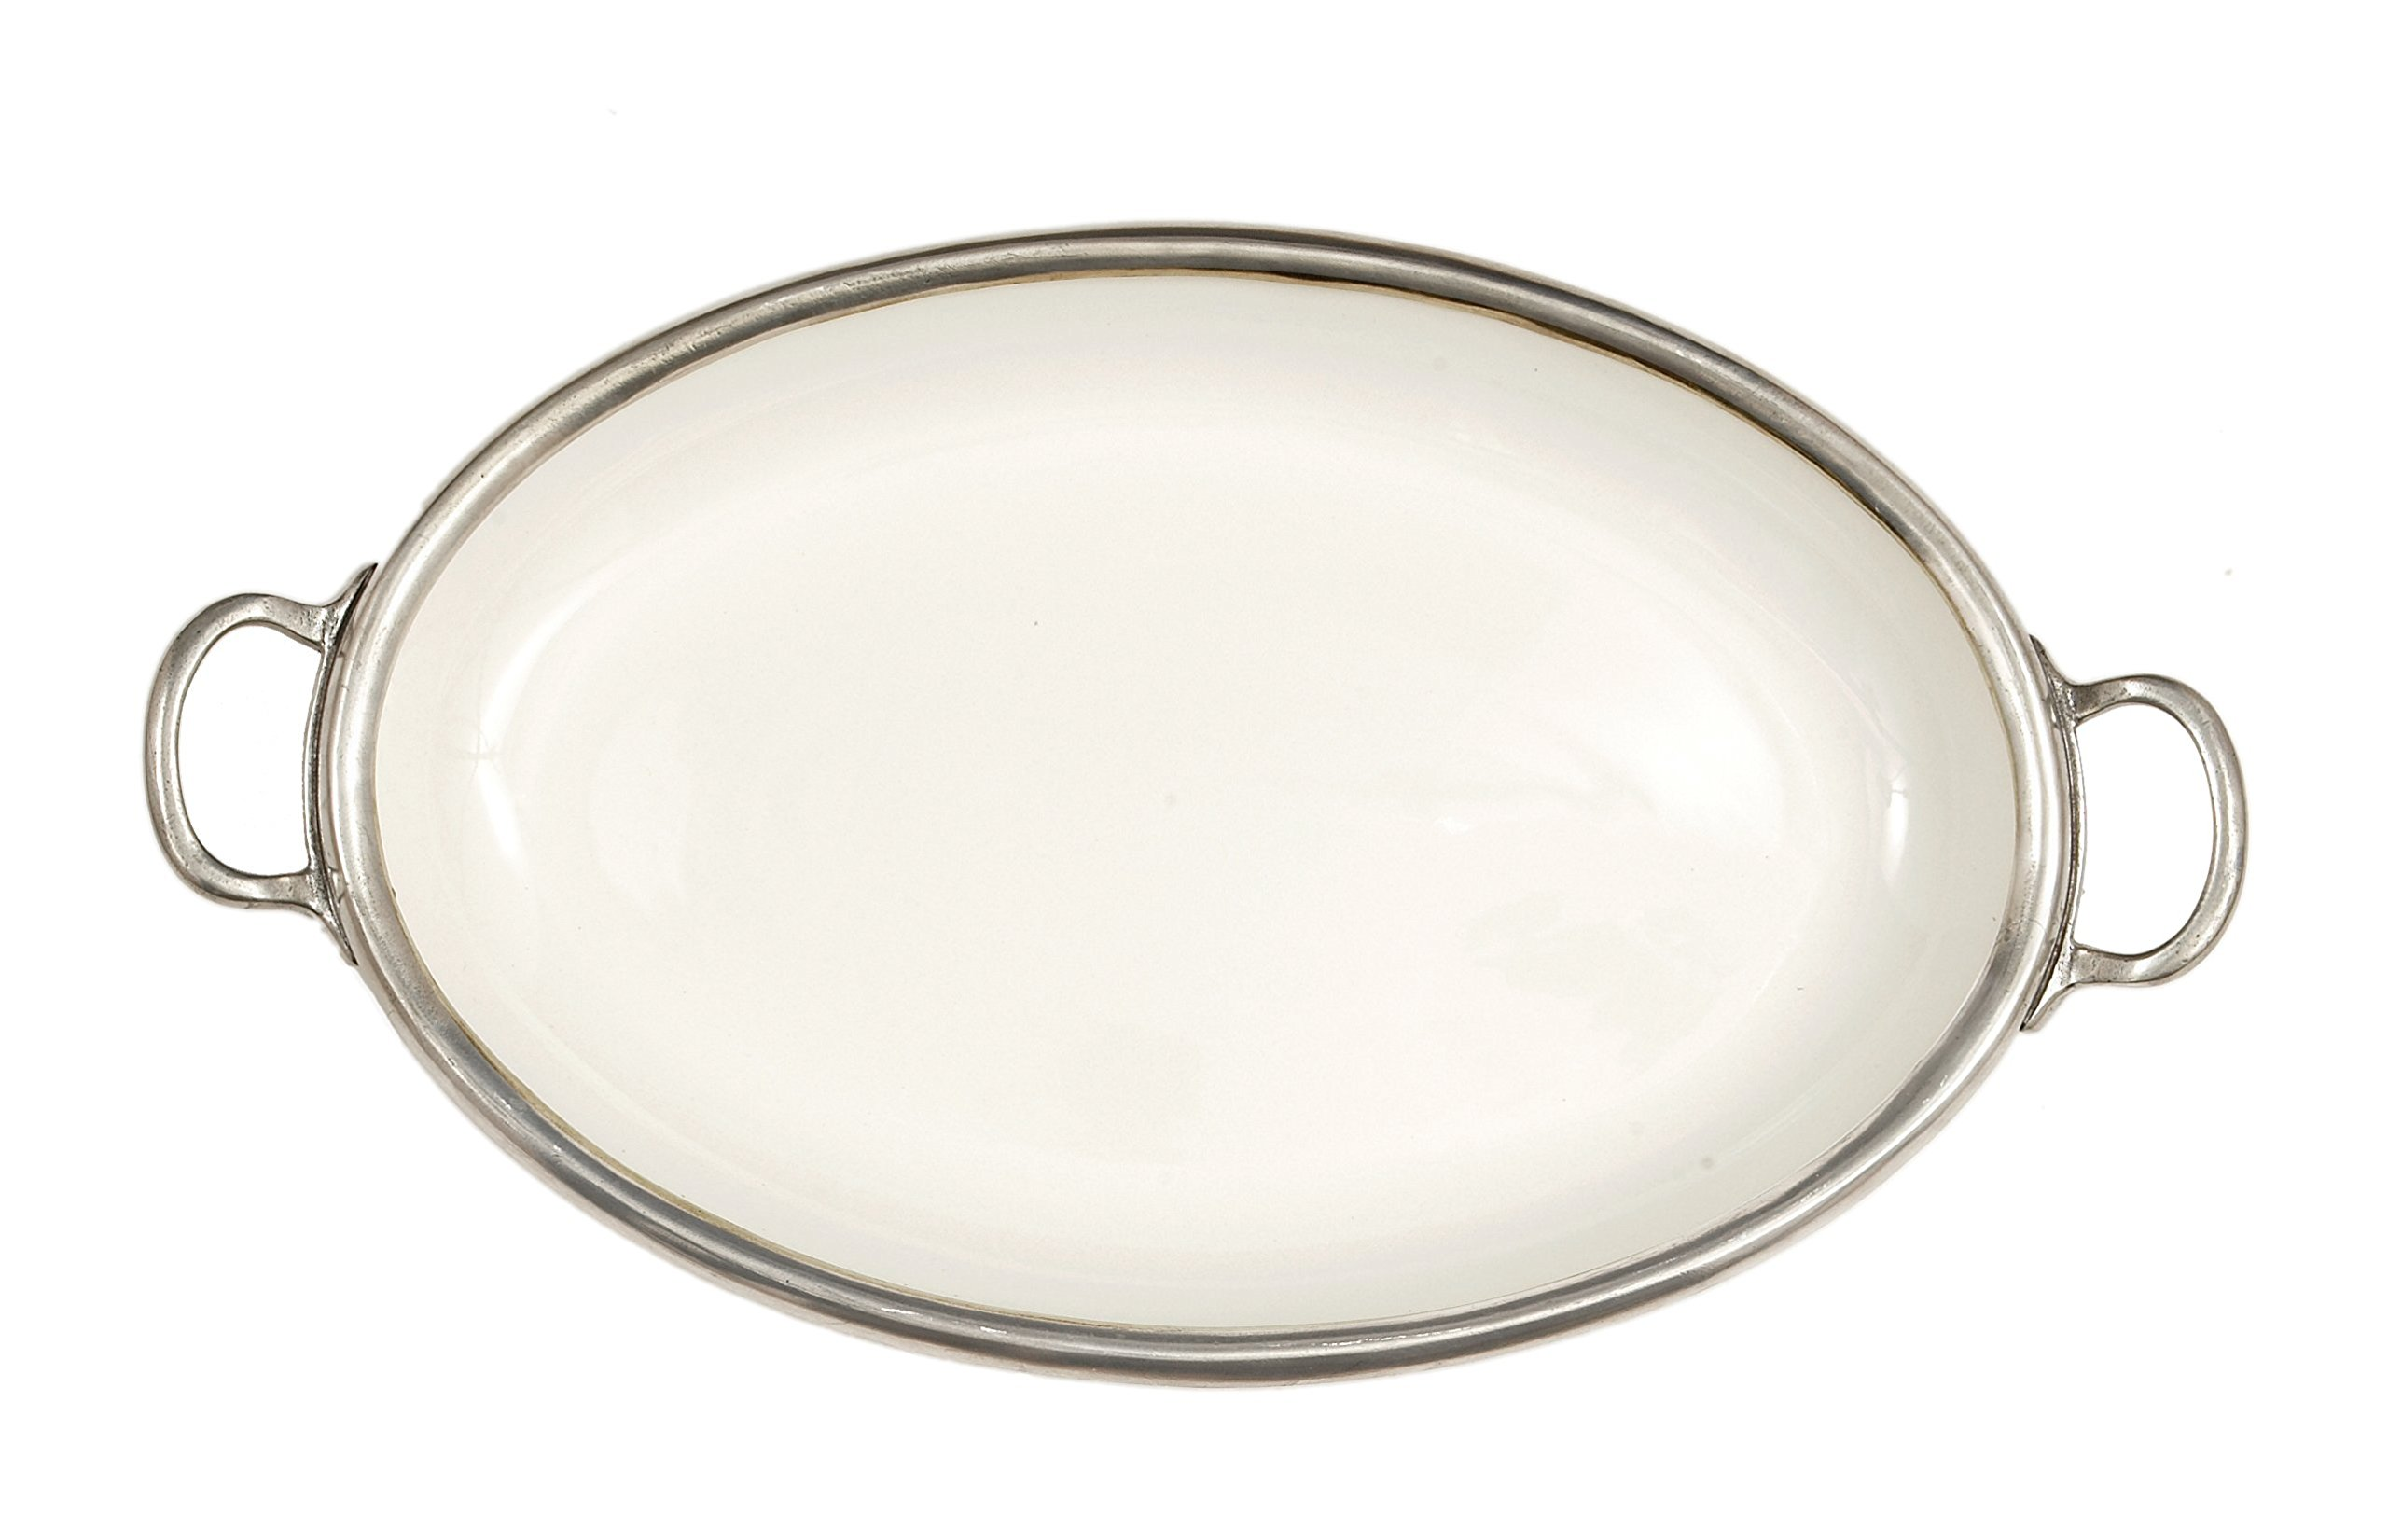 Arte Italica Tuscan Oval Tray with Handles, White